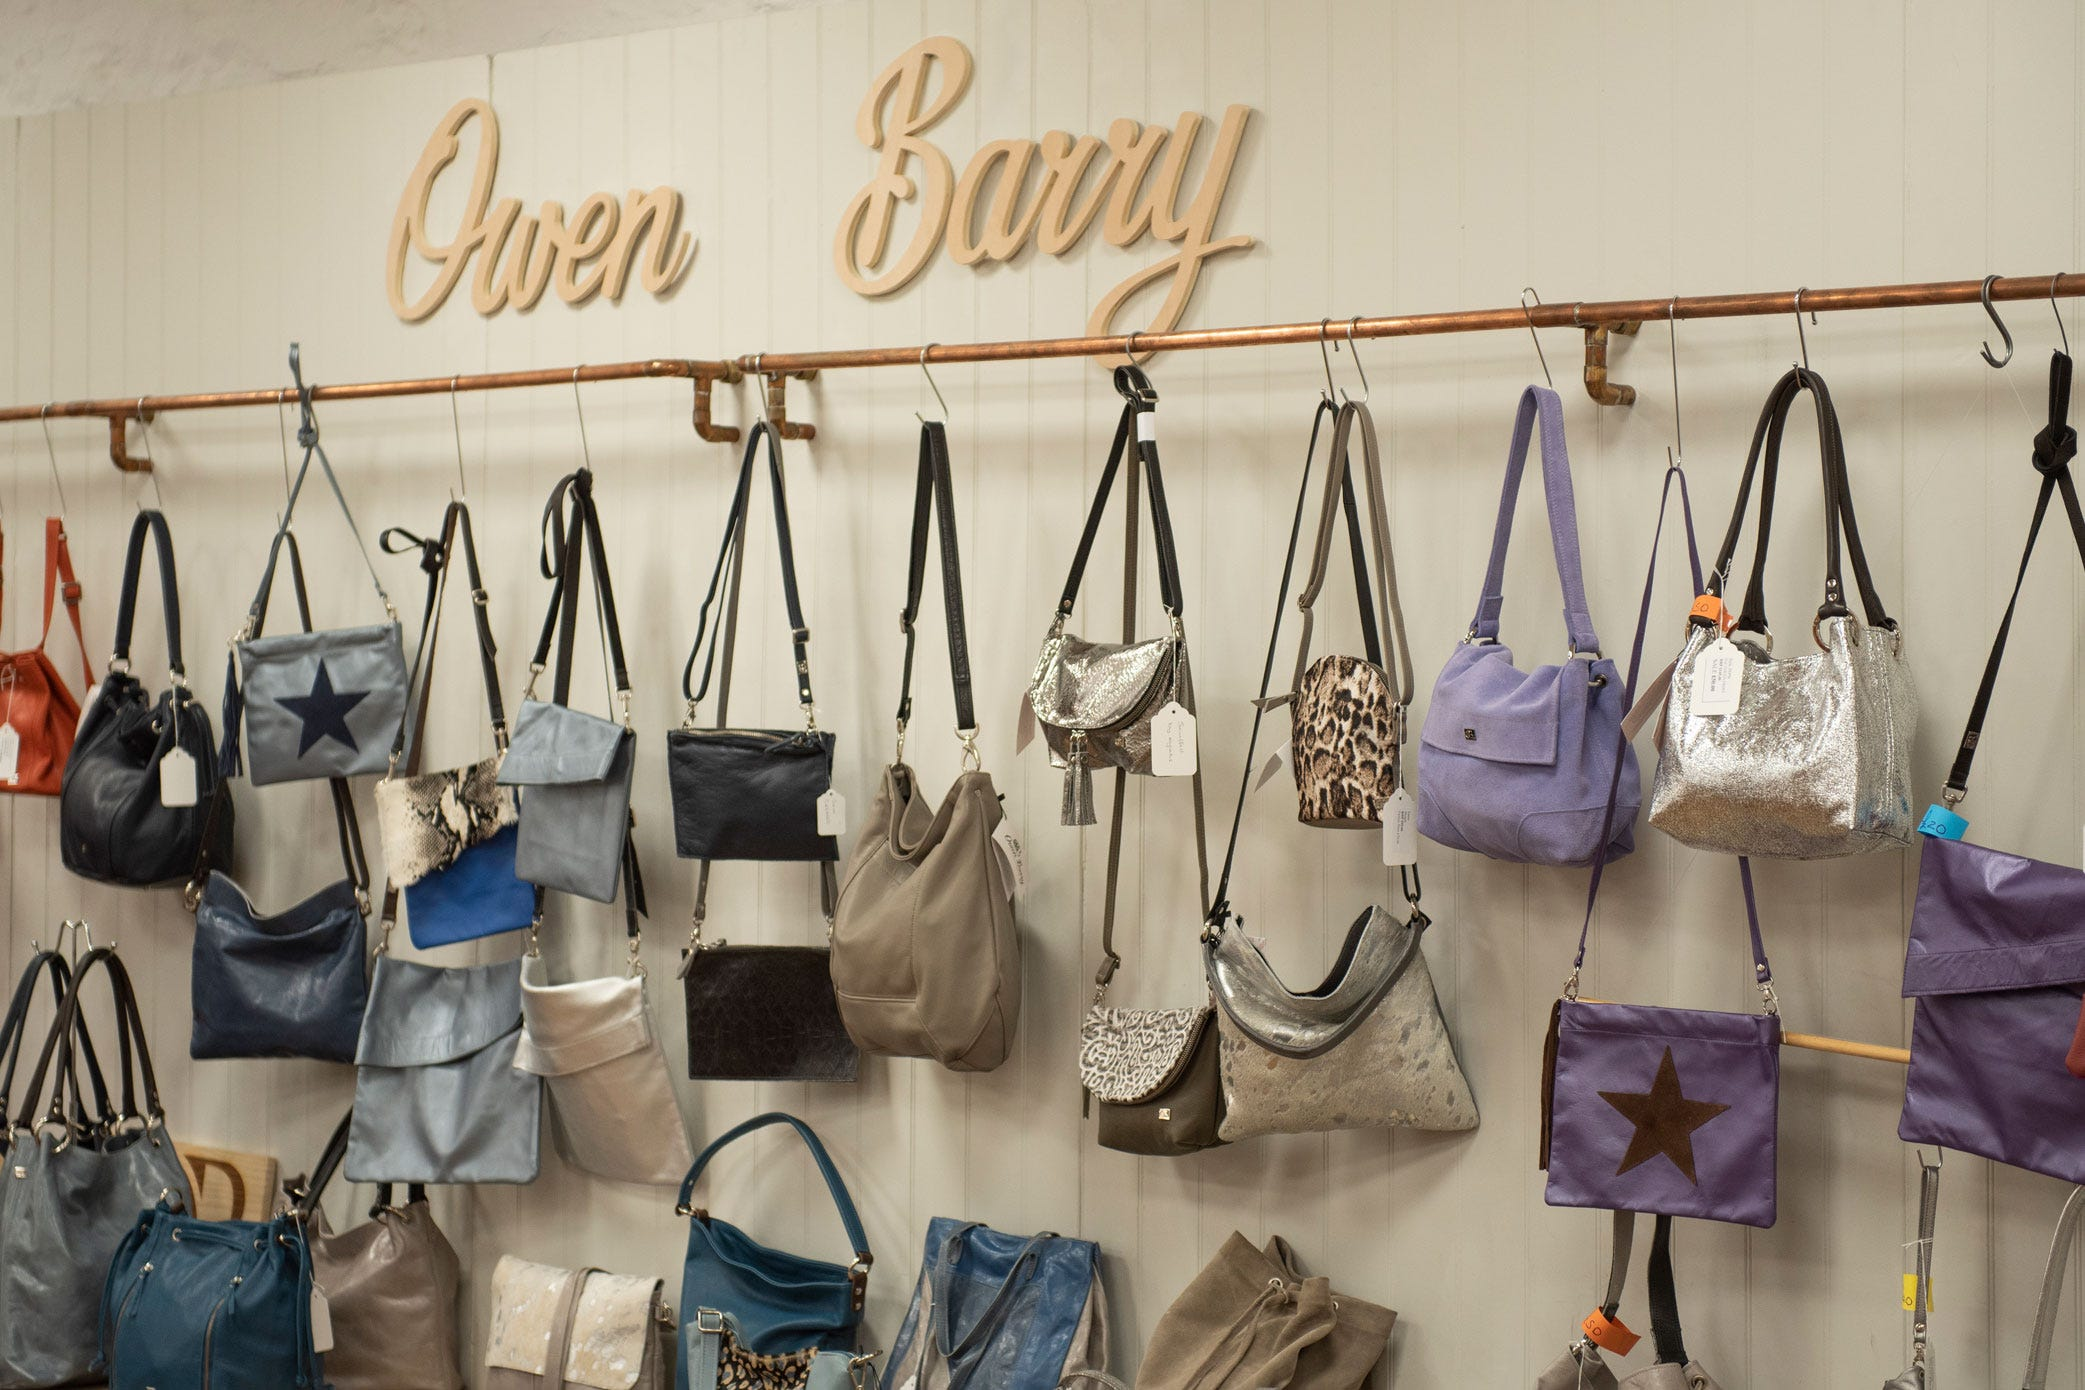 Owen Barry handbags